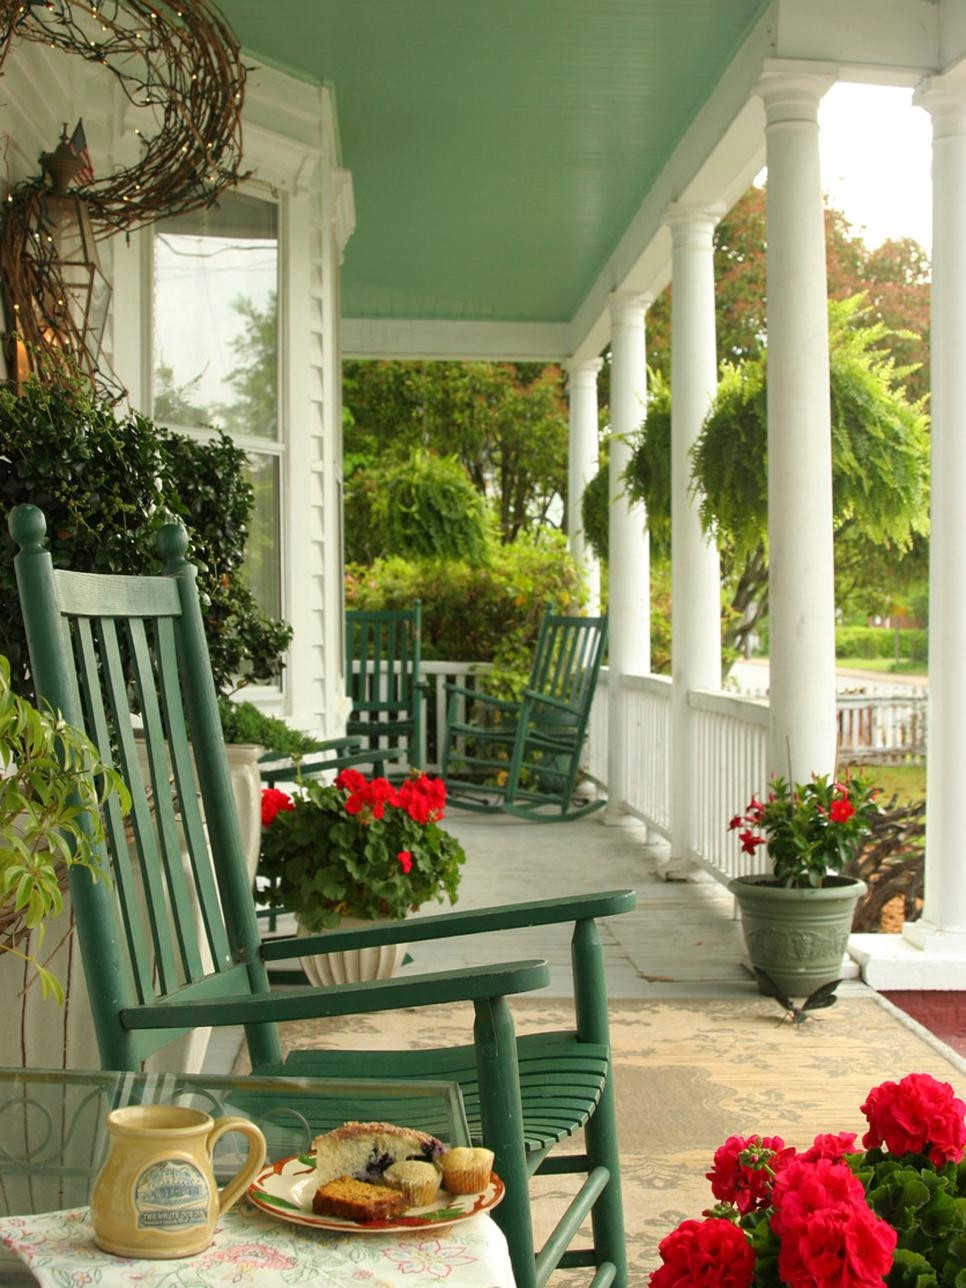 Best ideas about Small Front Porch Furniture Ideas . Save or Pin Narrow Front Porch Furniture Ideas Now.